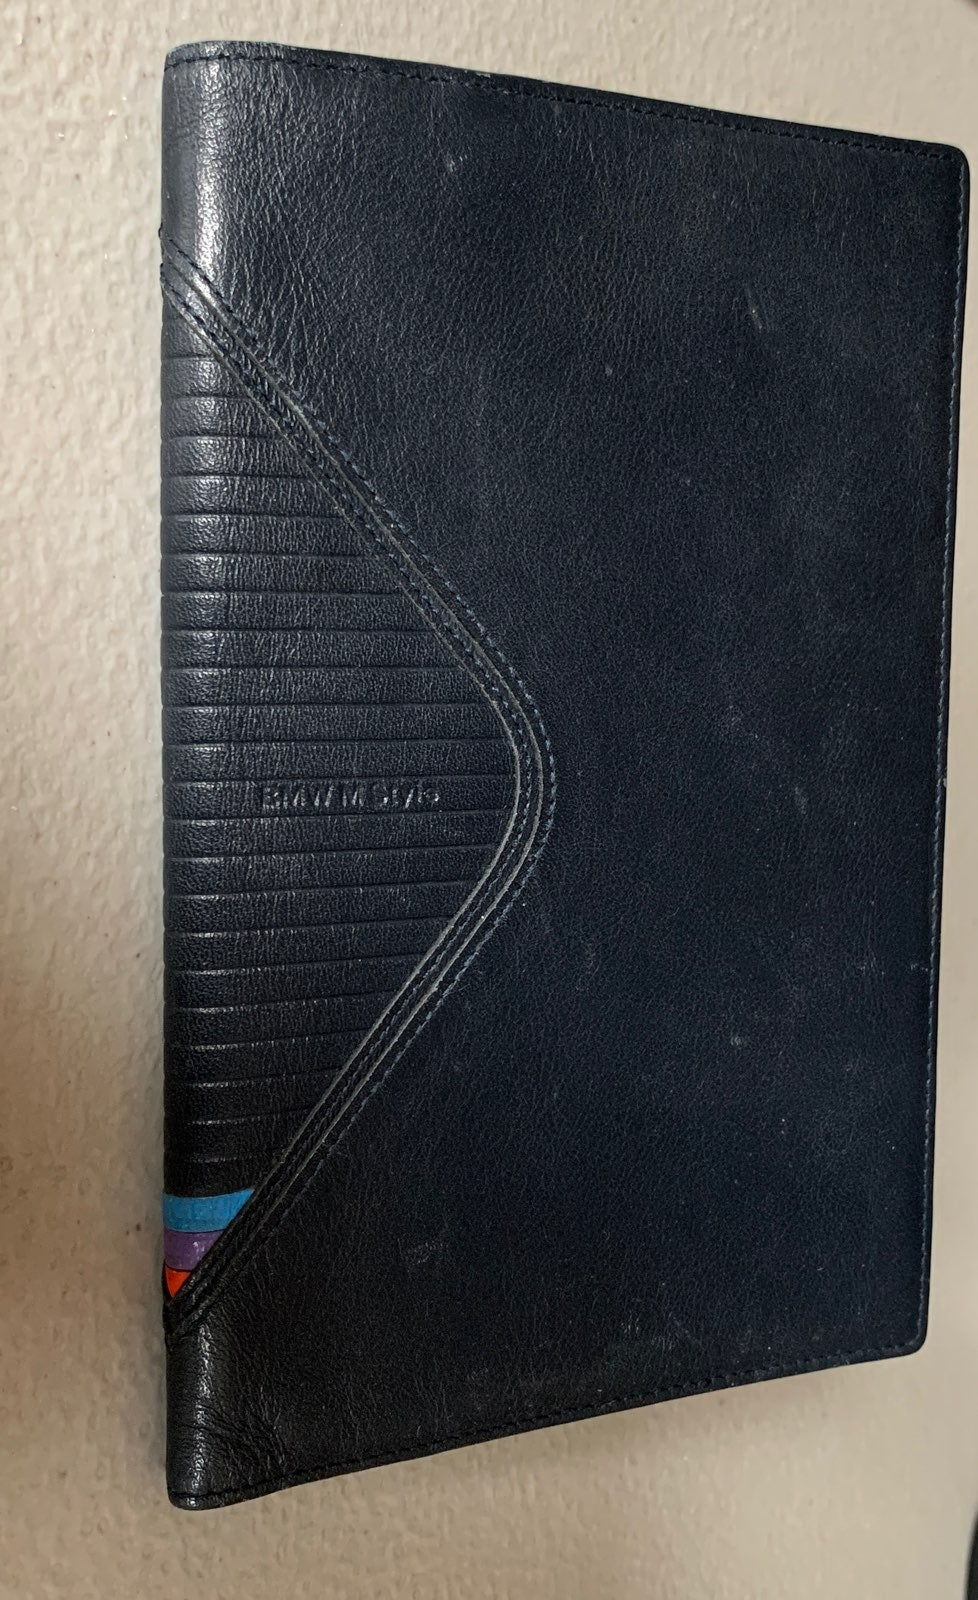 BMW M STYLE LEATHER TRIFOLD WALLET